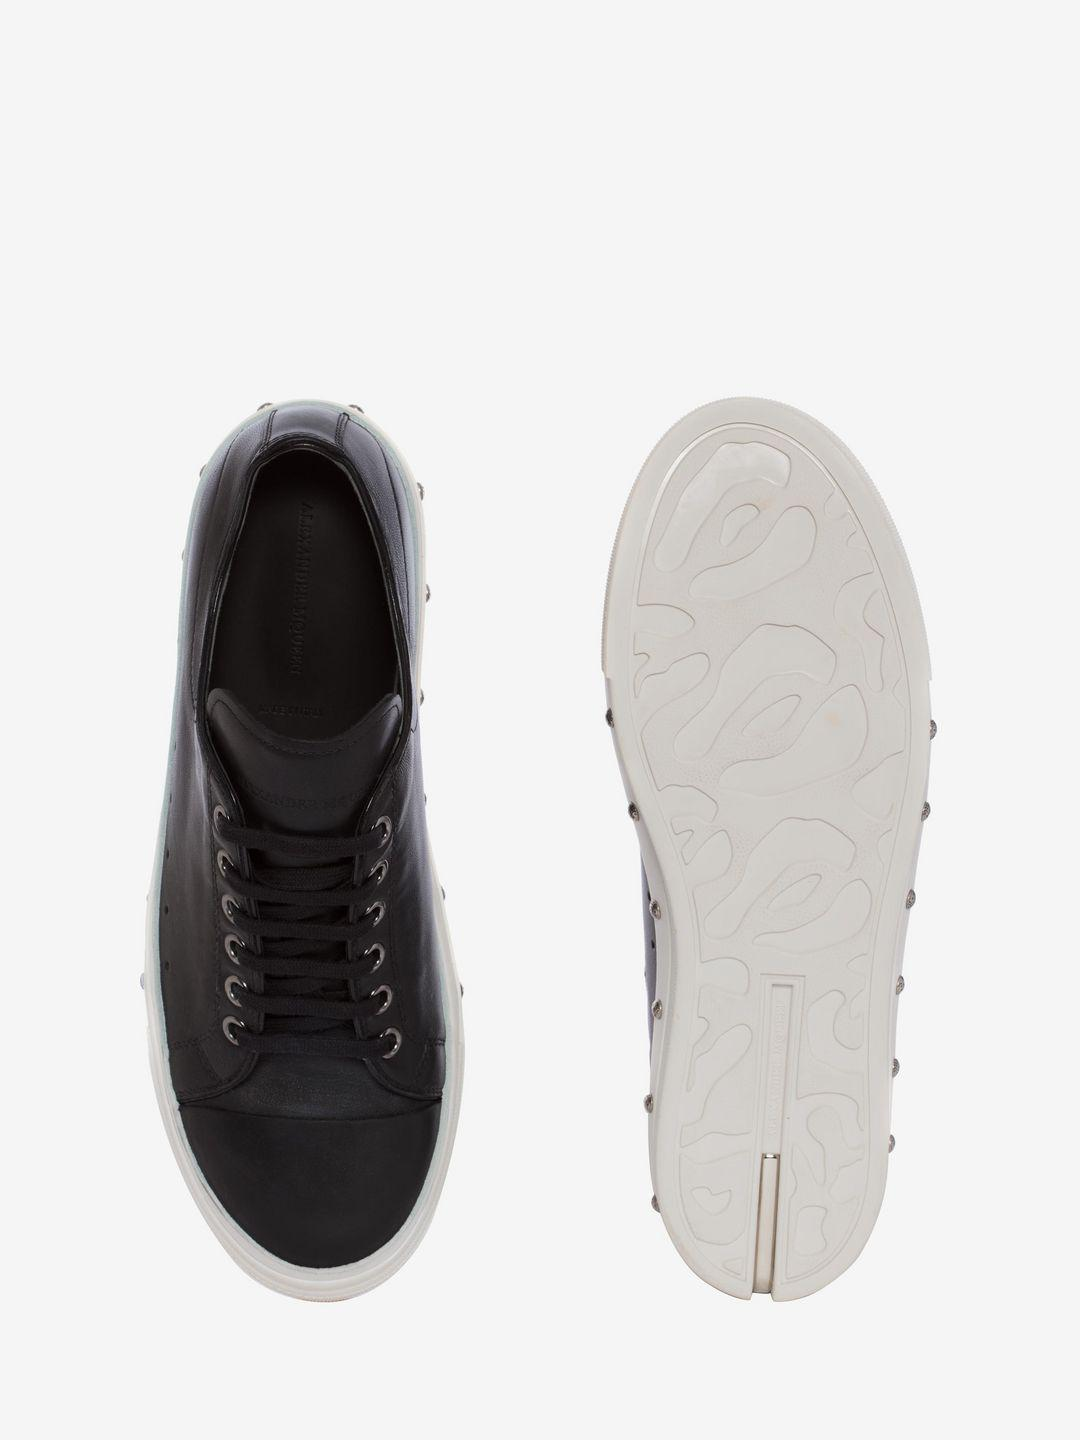 Alexander McQueen Leather Cupsole Sneaker in Black